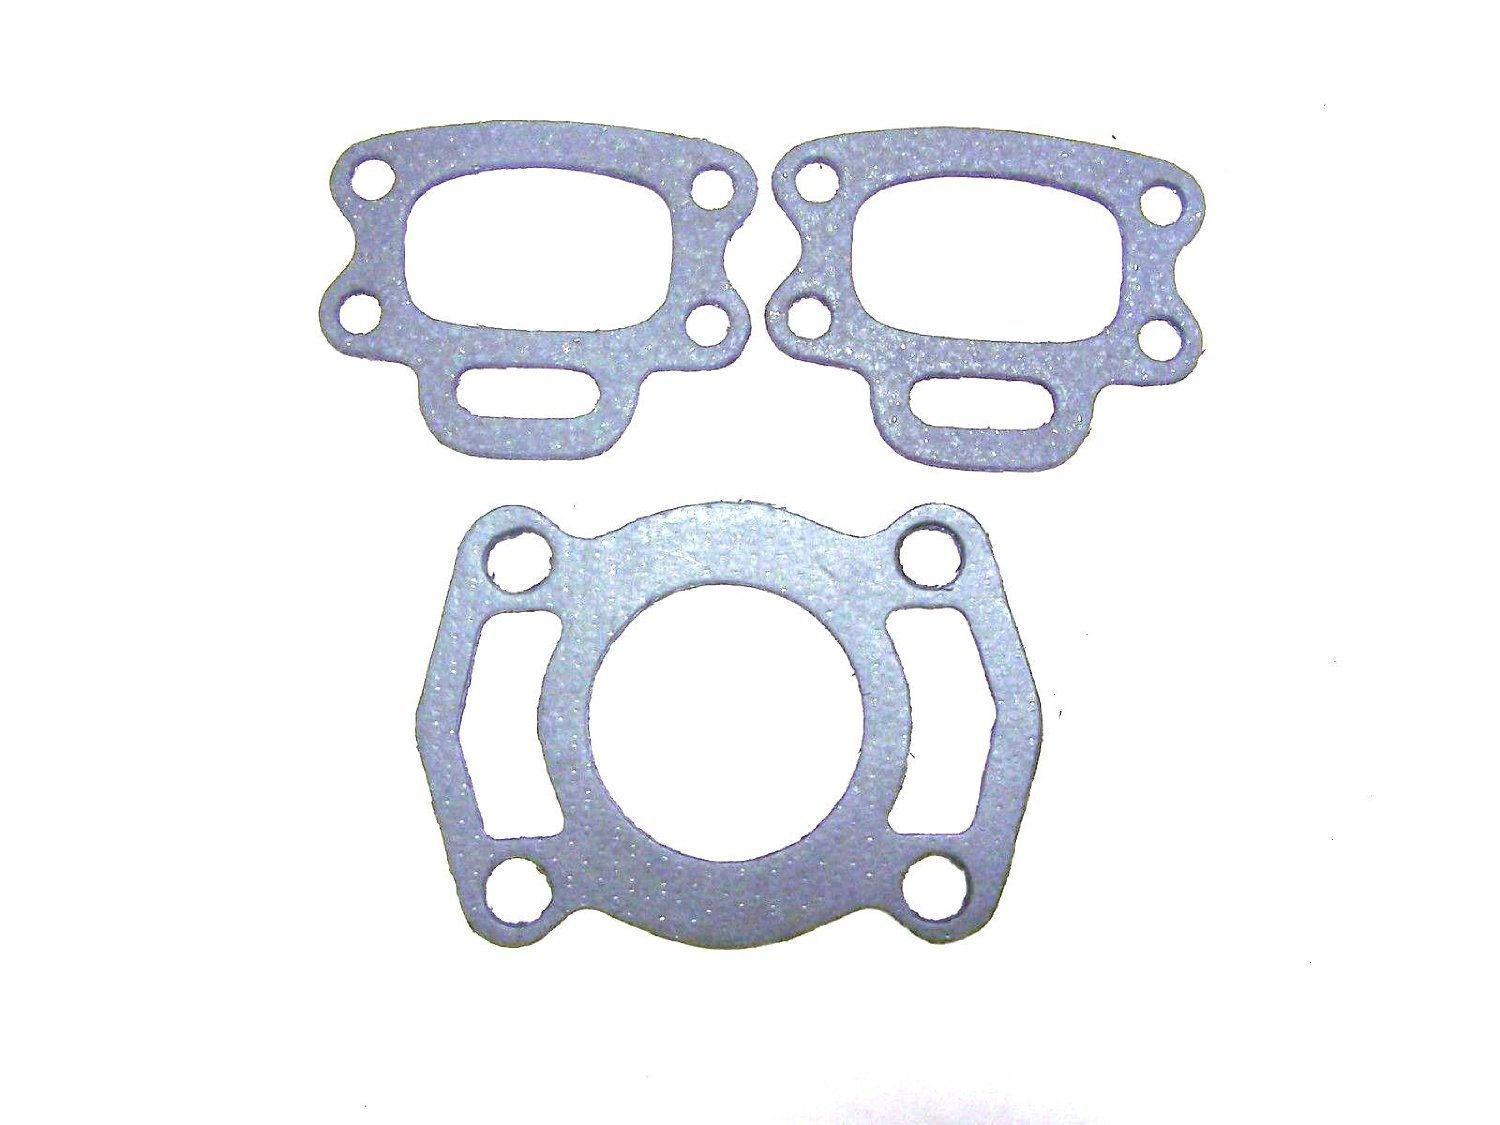 Sea Doo Exhaust Manifold Seadoo Gasket Set Xp Gtx Gts Gti Hx Speedster Gts Gs Gsi Spx JSP Manufacturing GK-420950253 and two of 420850638-FBA